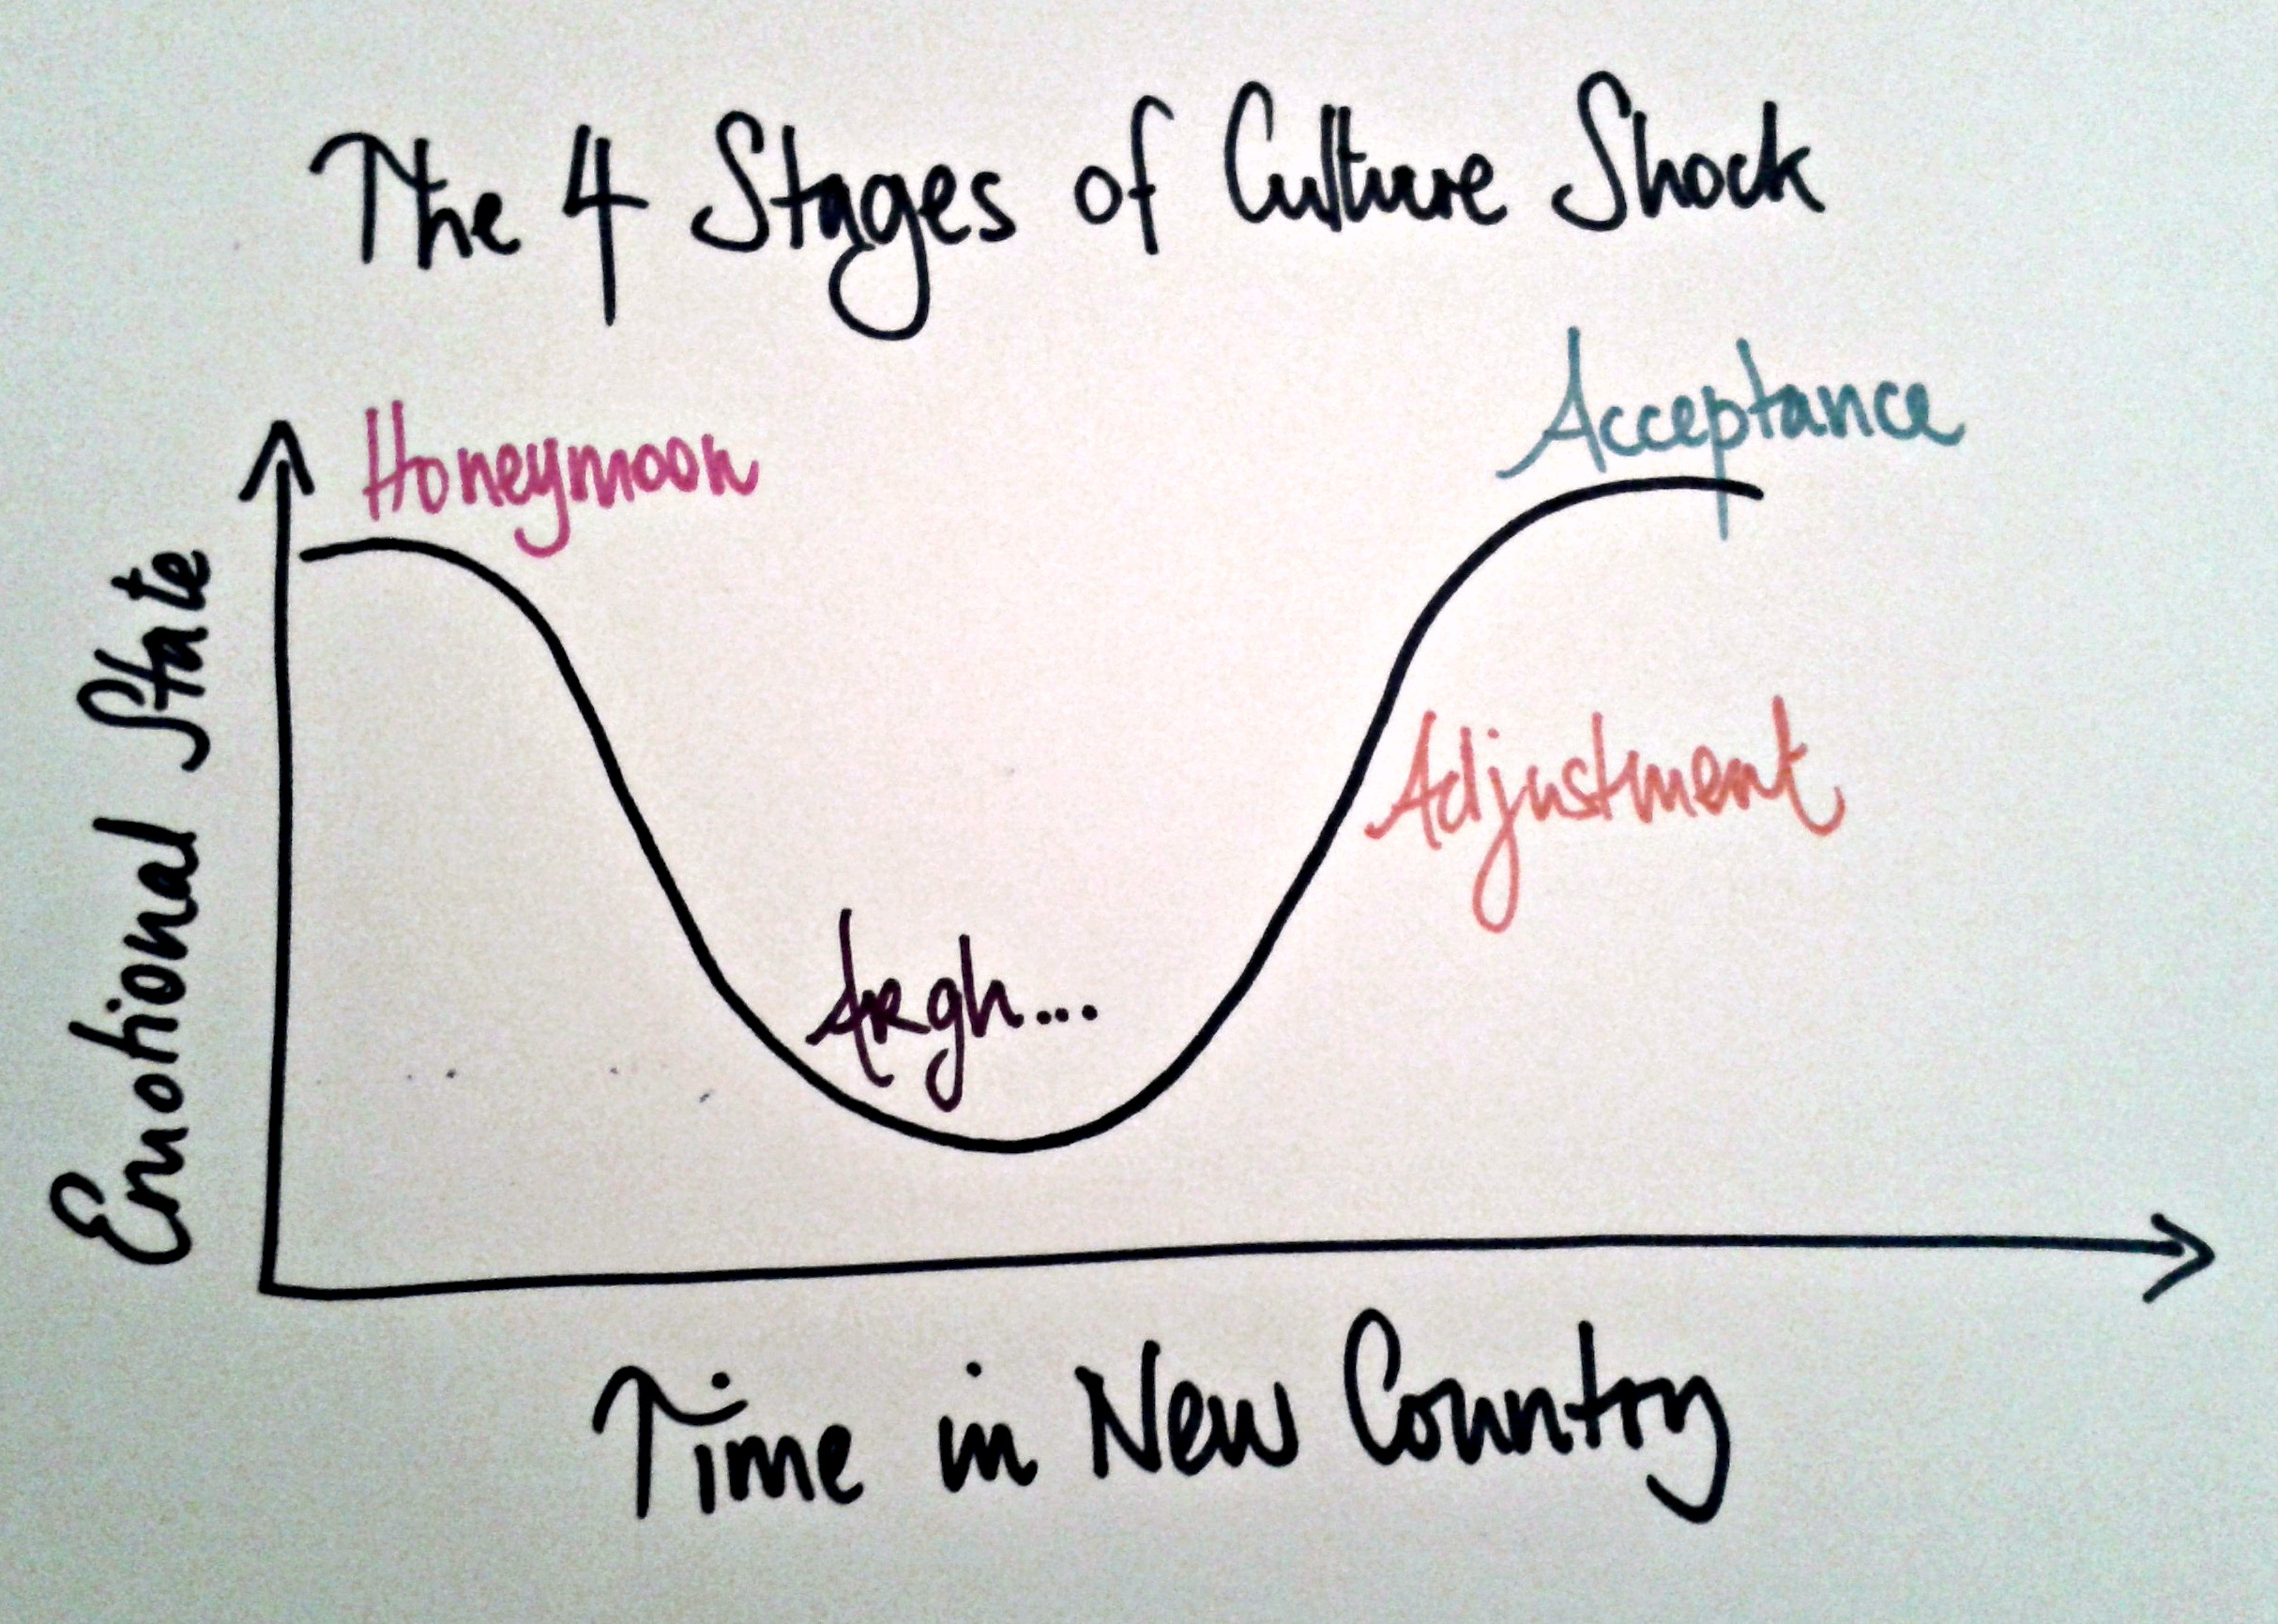 an essay on cultural shock in america